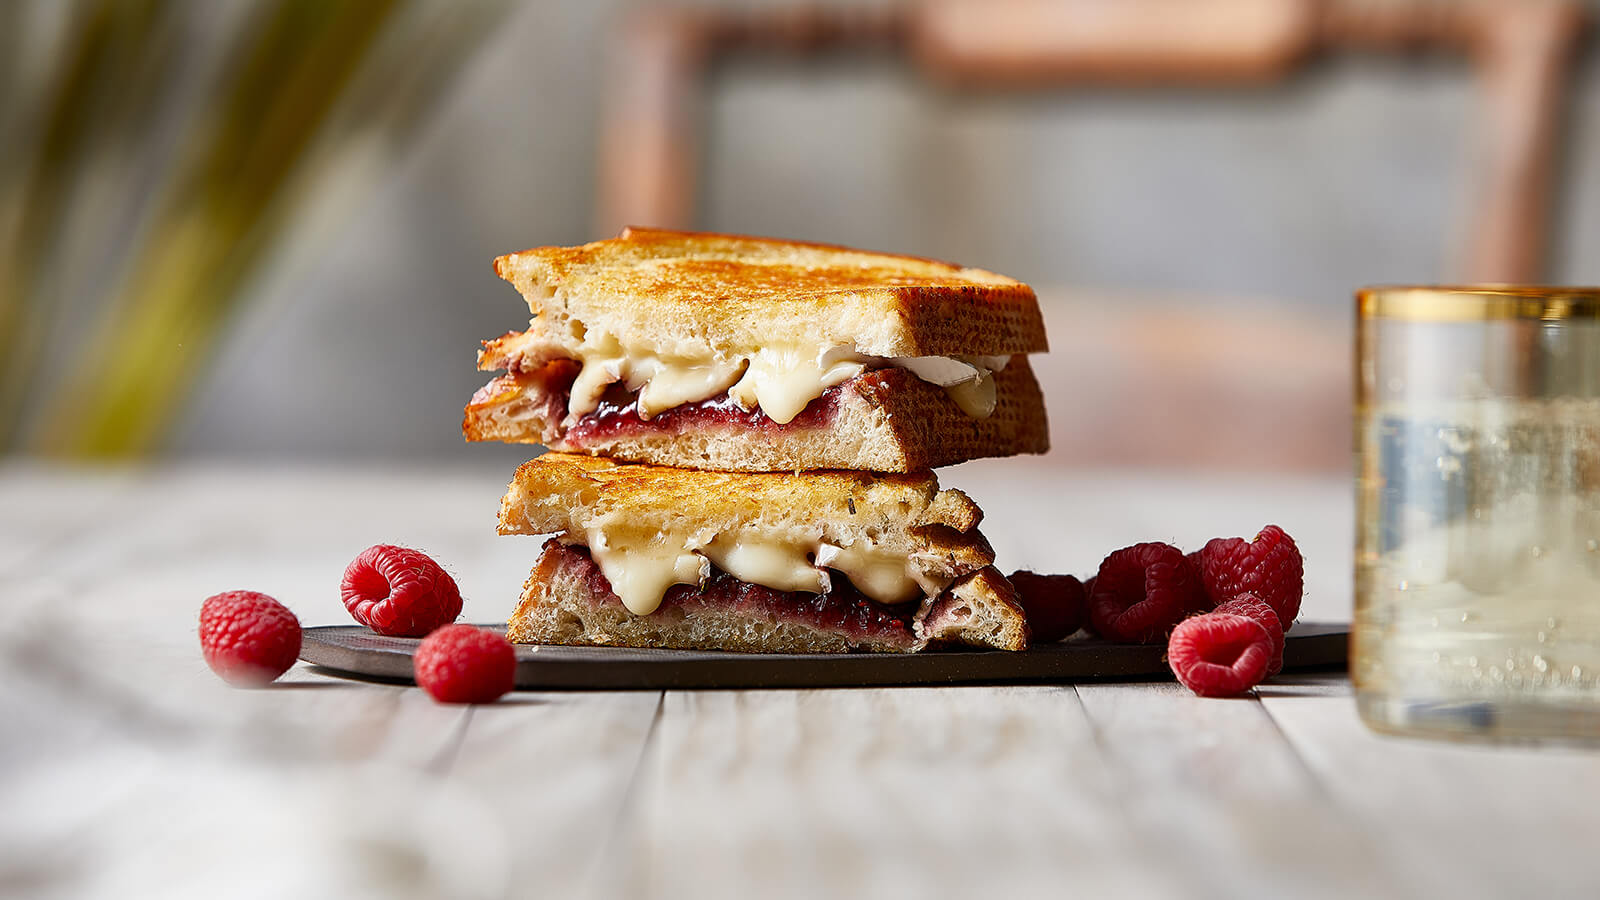 Raspberry Brie Grilled Cheese Sandwich